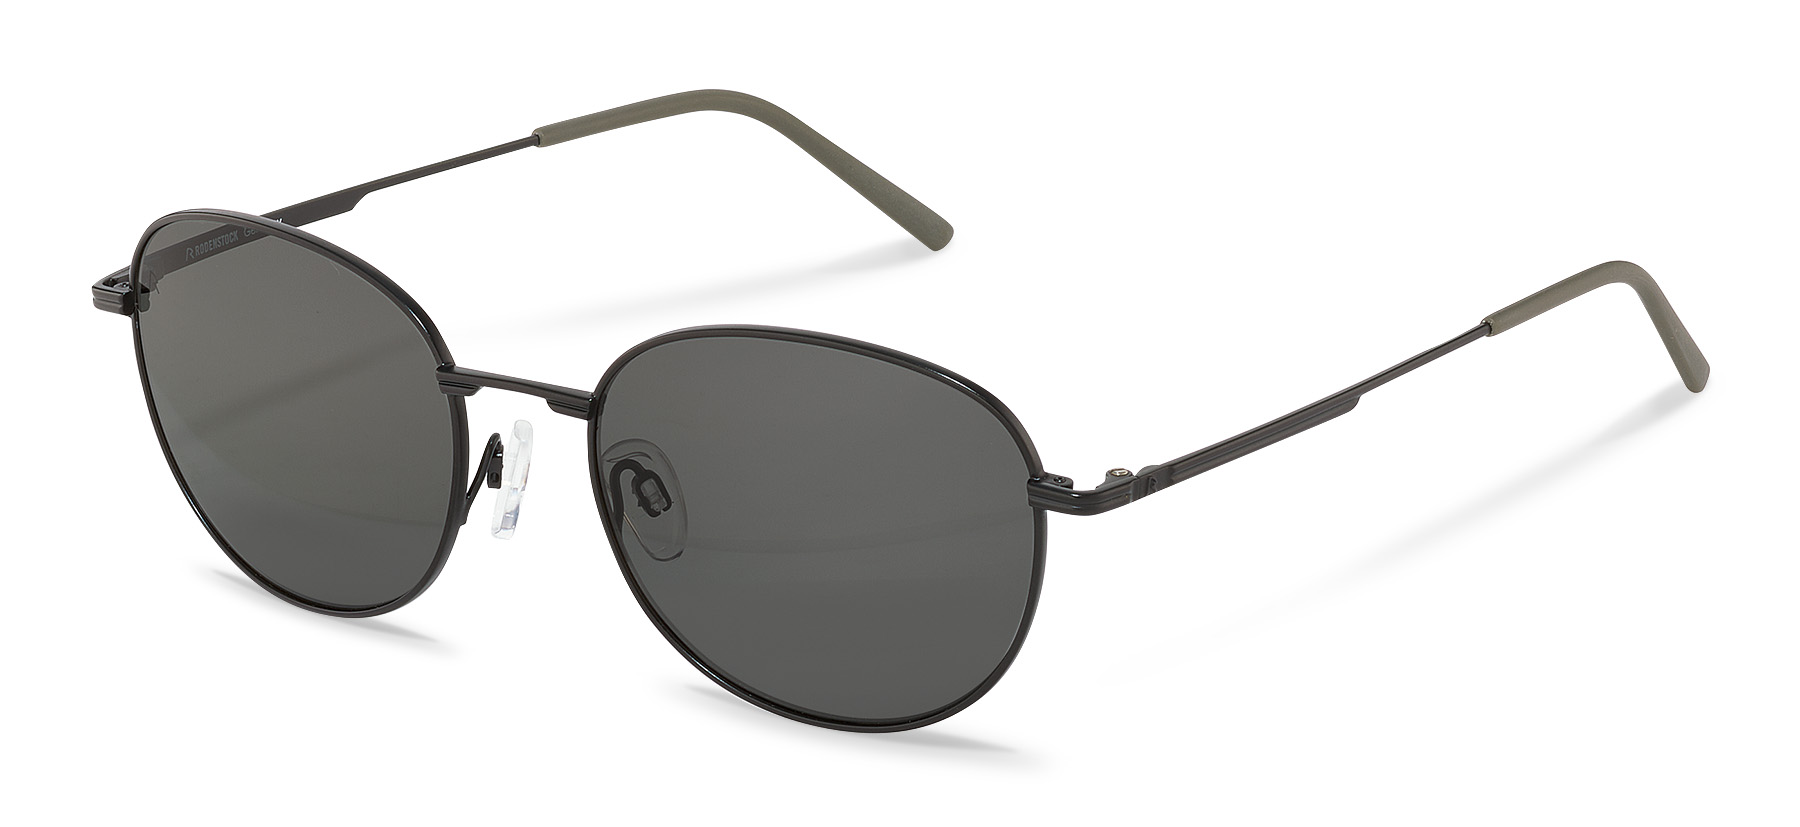 Rodenstock-Sunglasses-R1433-black/grey